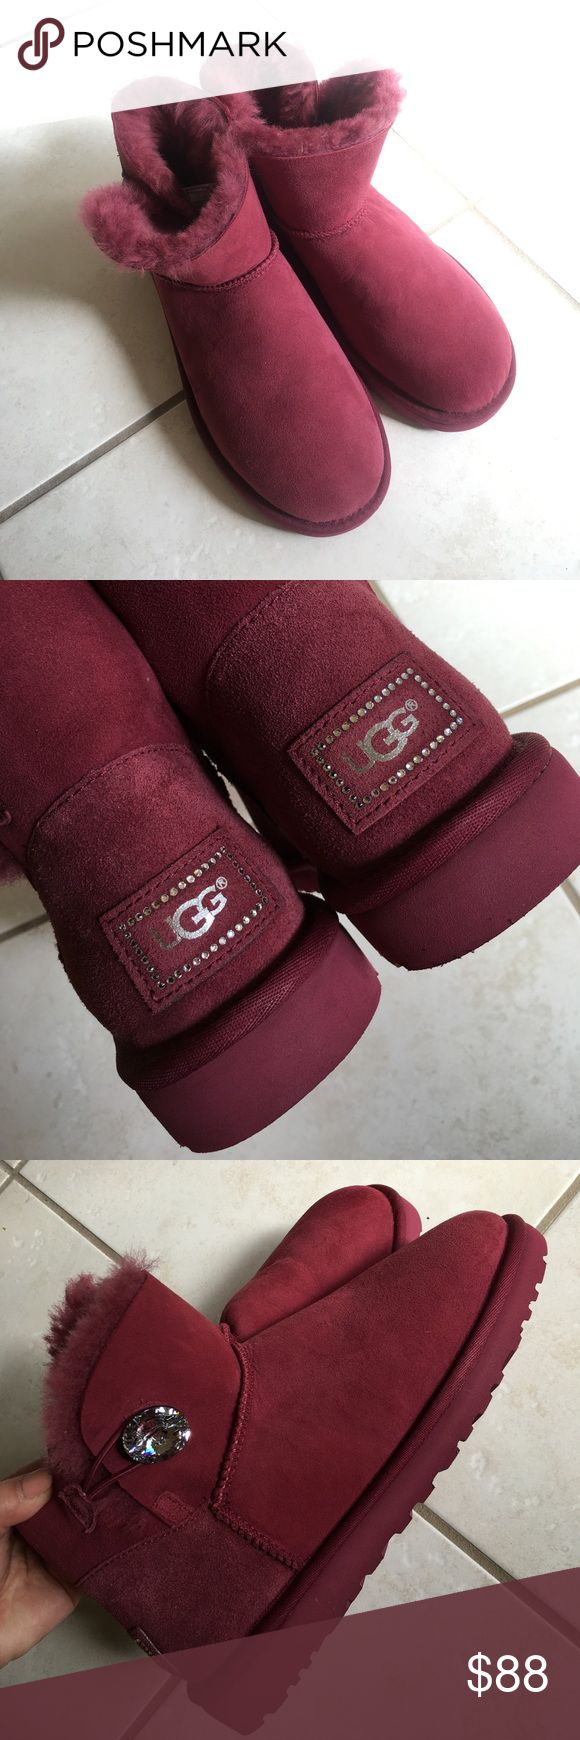 Ugg mini bailey button bling Brand new but no box. They are too small for me. Color is garnet. It's purple but more like burgundy. UGG Shoes Winter & Rain Boots